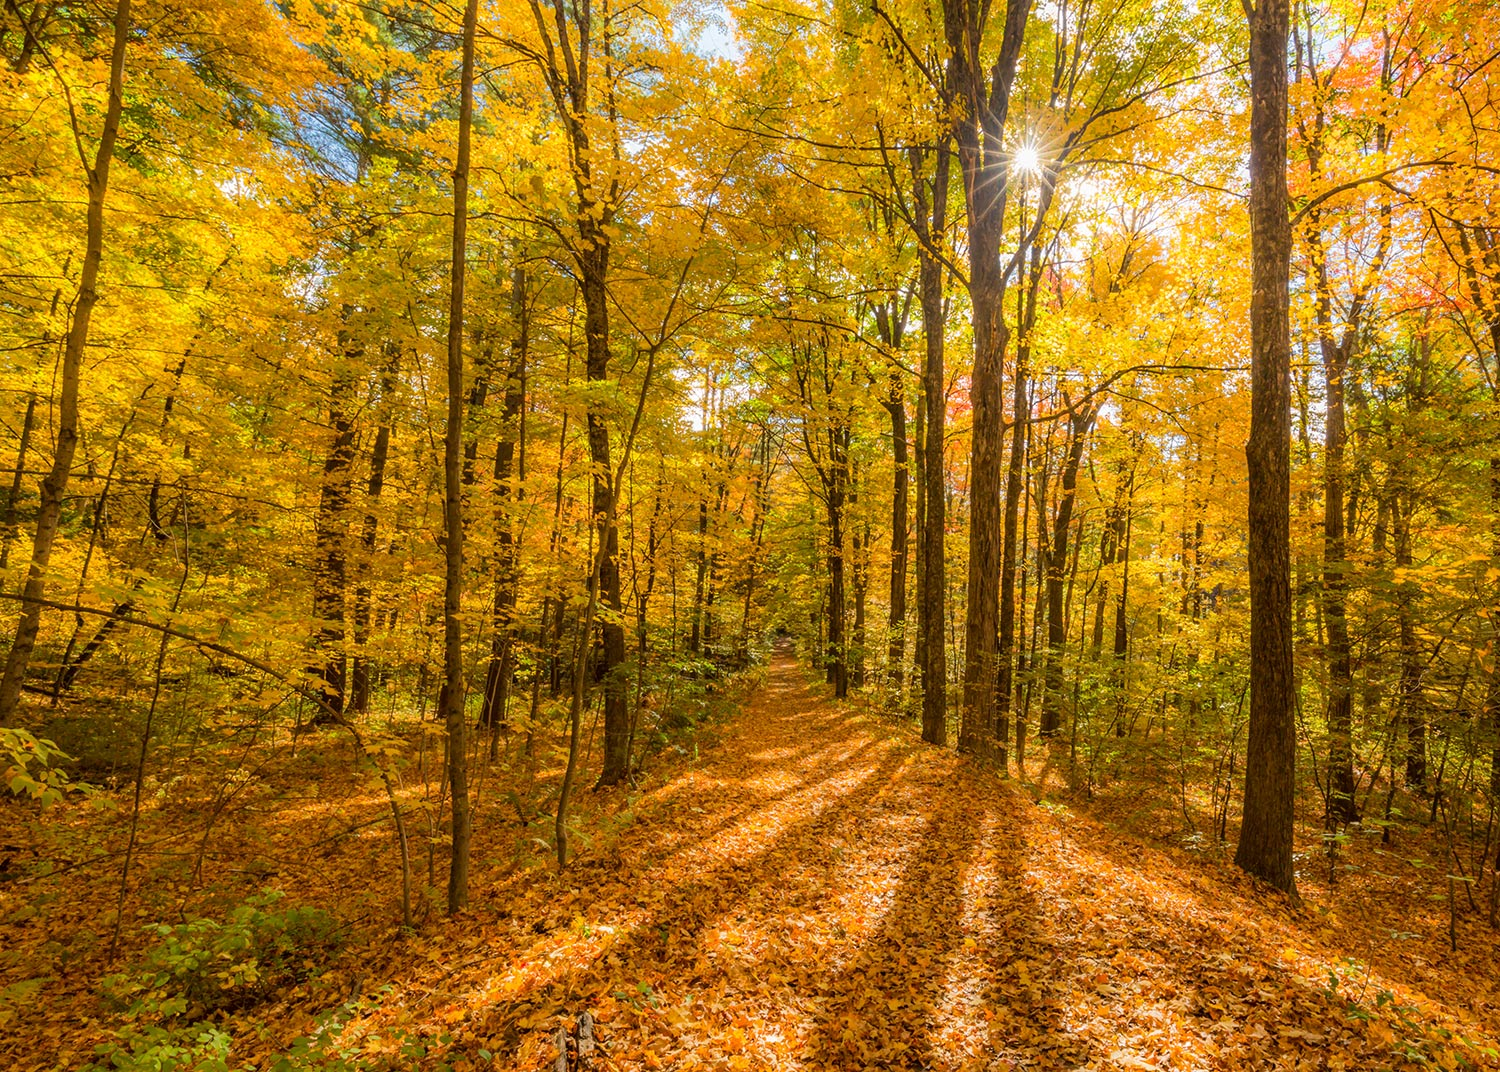 Golden hues of fall along the trail at Nashua River Woods, Lancaster, MA.